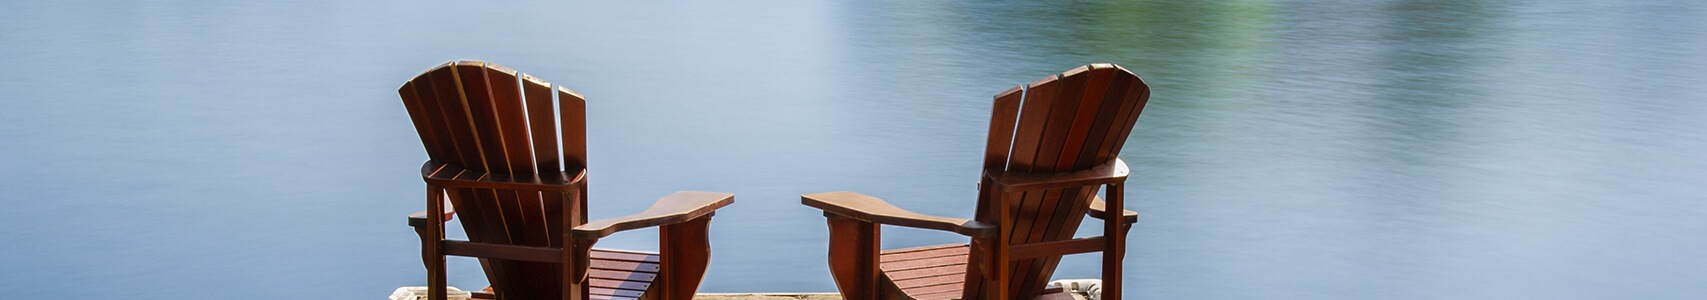 Two chairs sitting outside by a lake